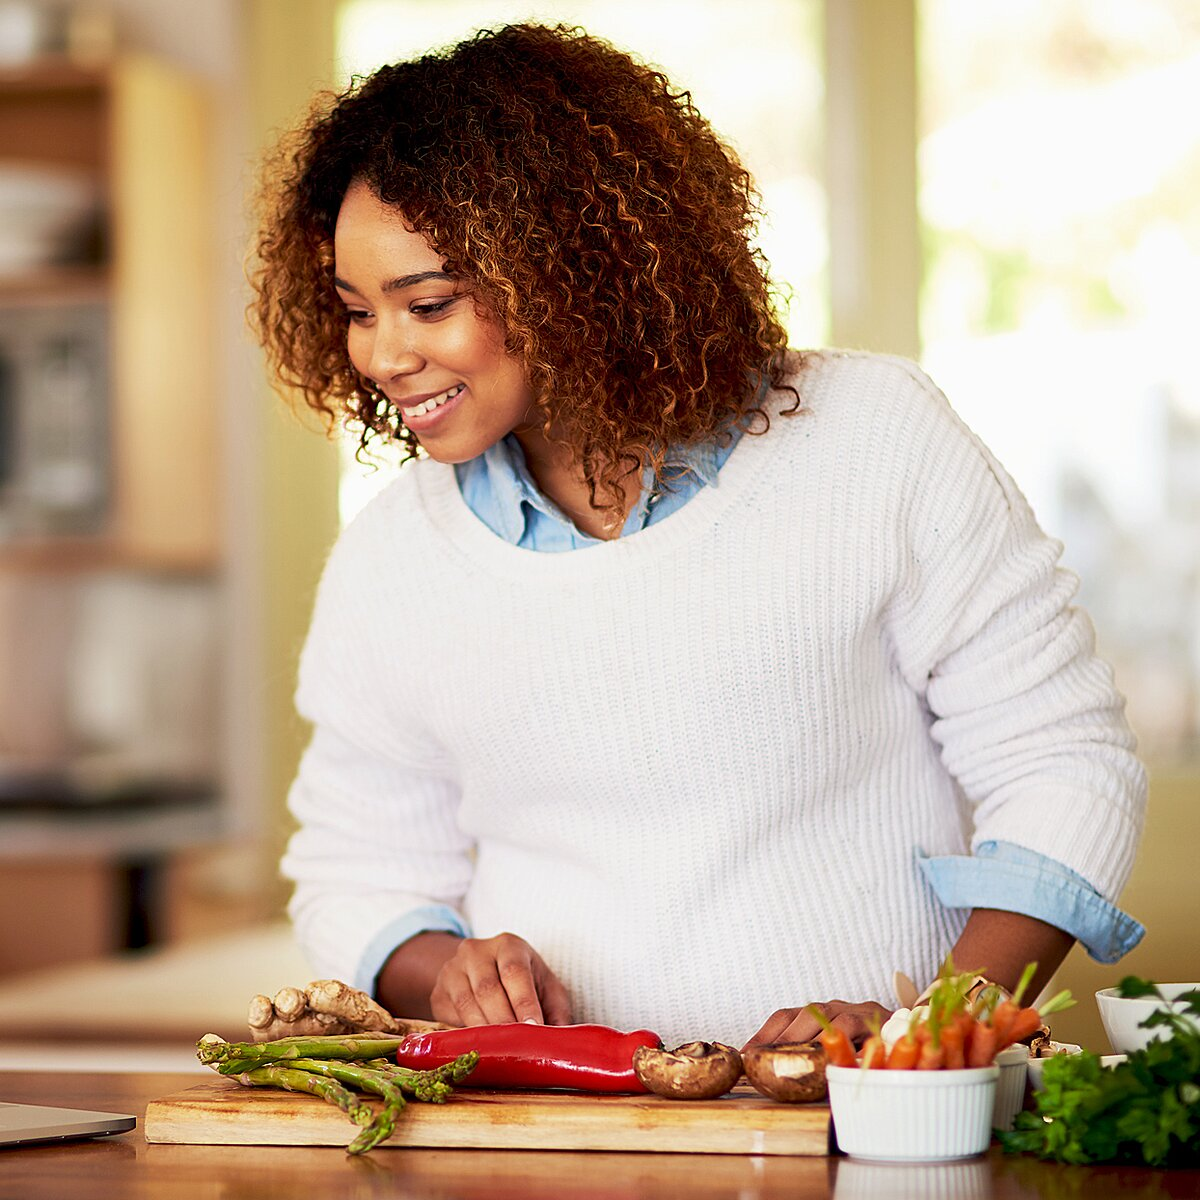 Plan a Virtual Cooking Date to Spend Quality Time with Mom This Mother's Day